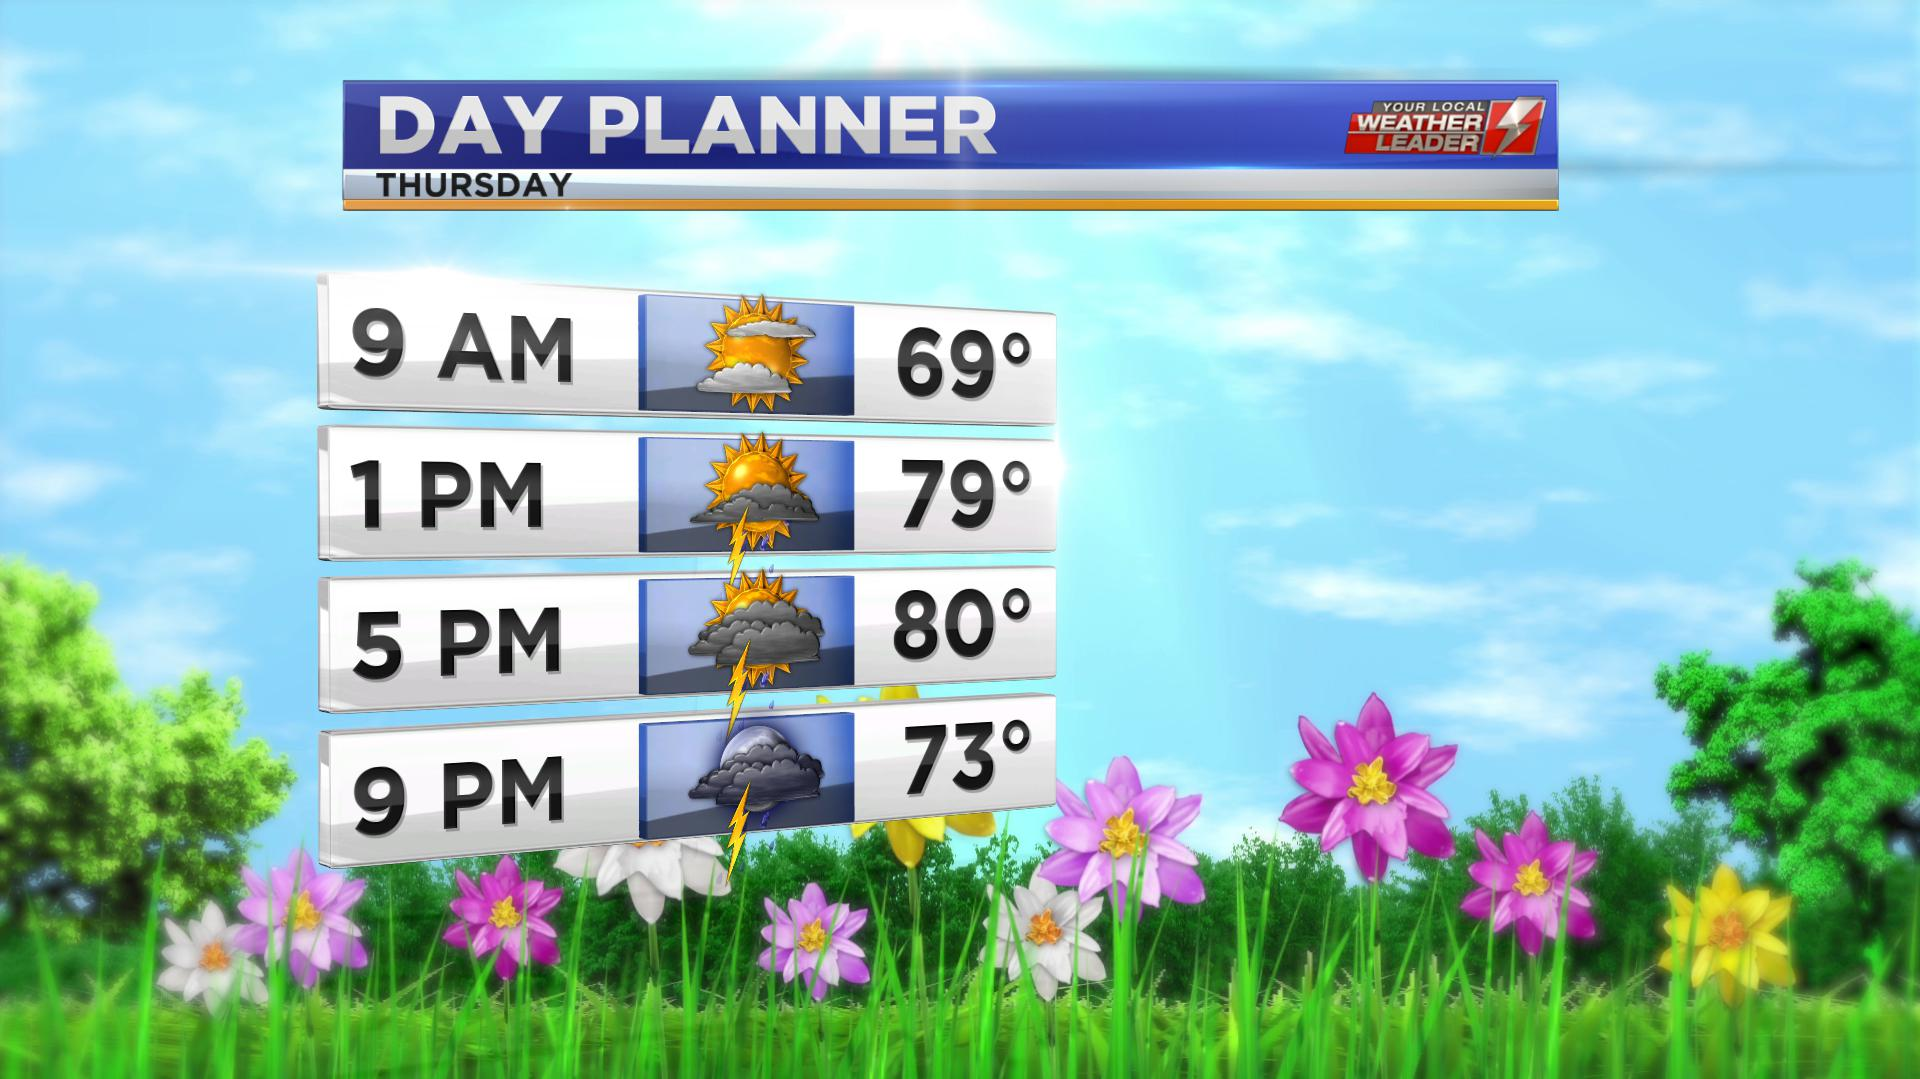 Day Planner for Thursday 02 May 2019